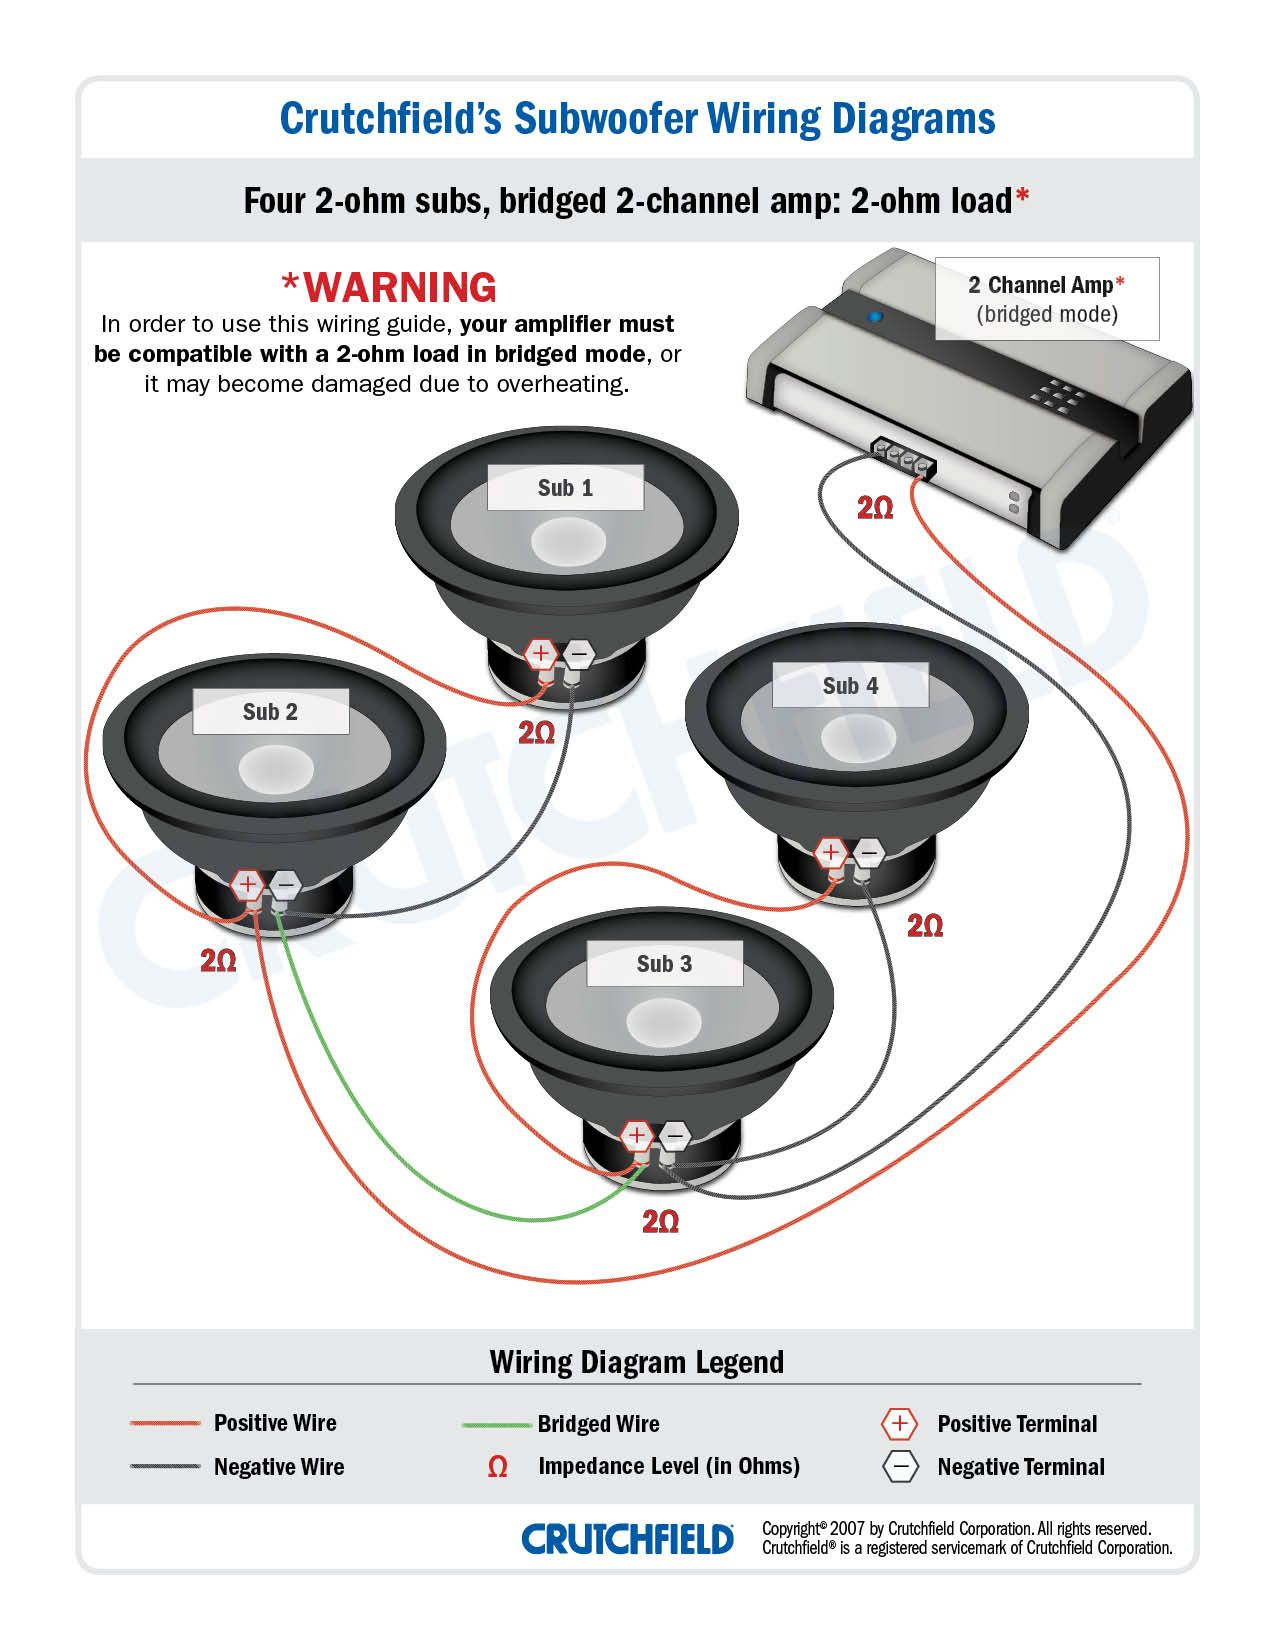 top 10 subwoofer wiring diagram free download 4 svc 2 ohm 2 ch low, Wiring diagram